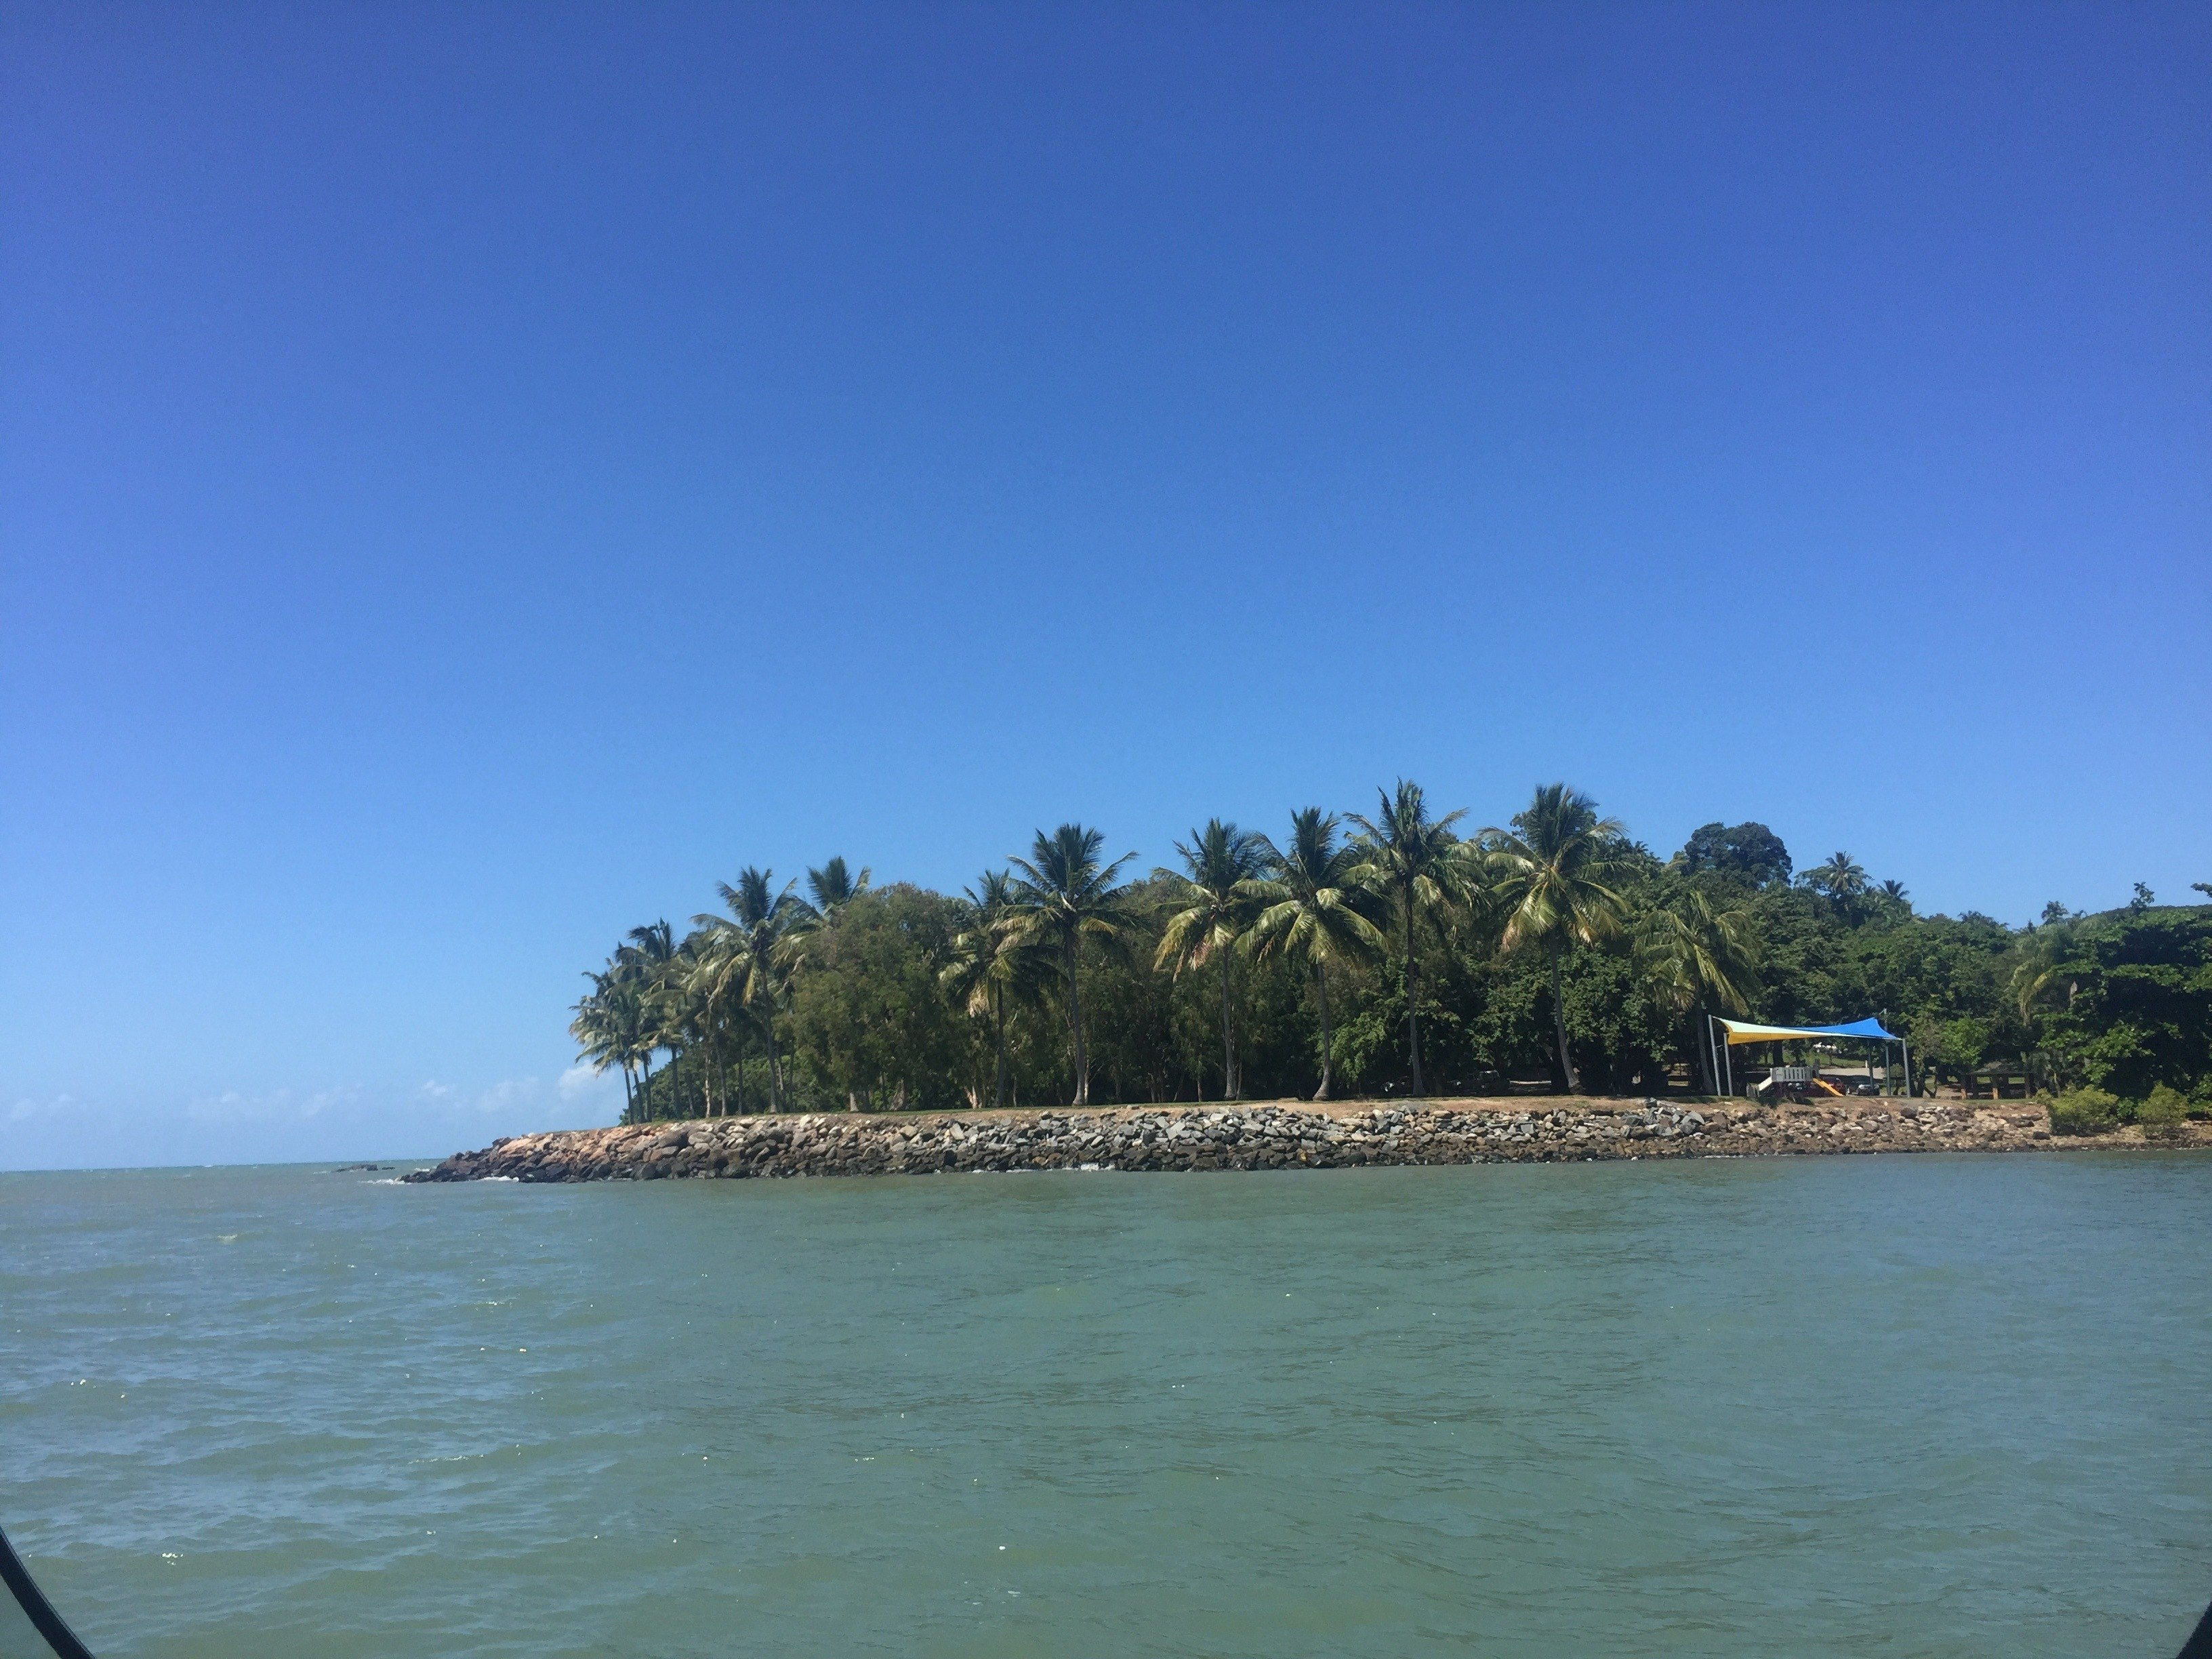 Heading back from our snorkel on the reef to Port Douglas